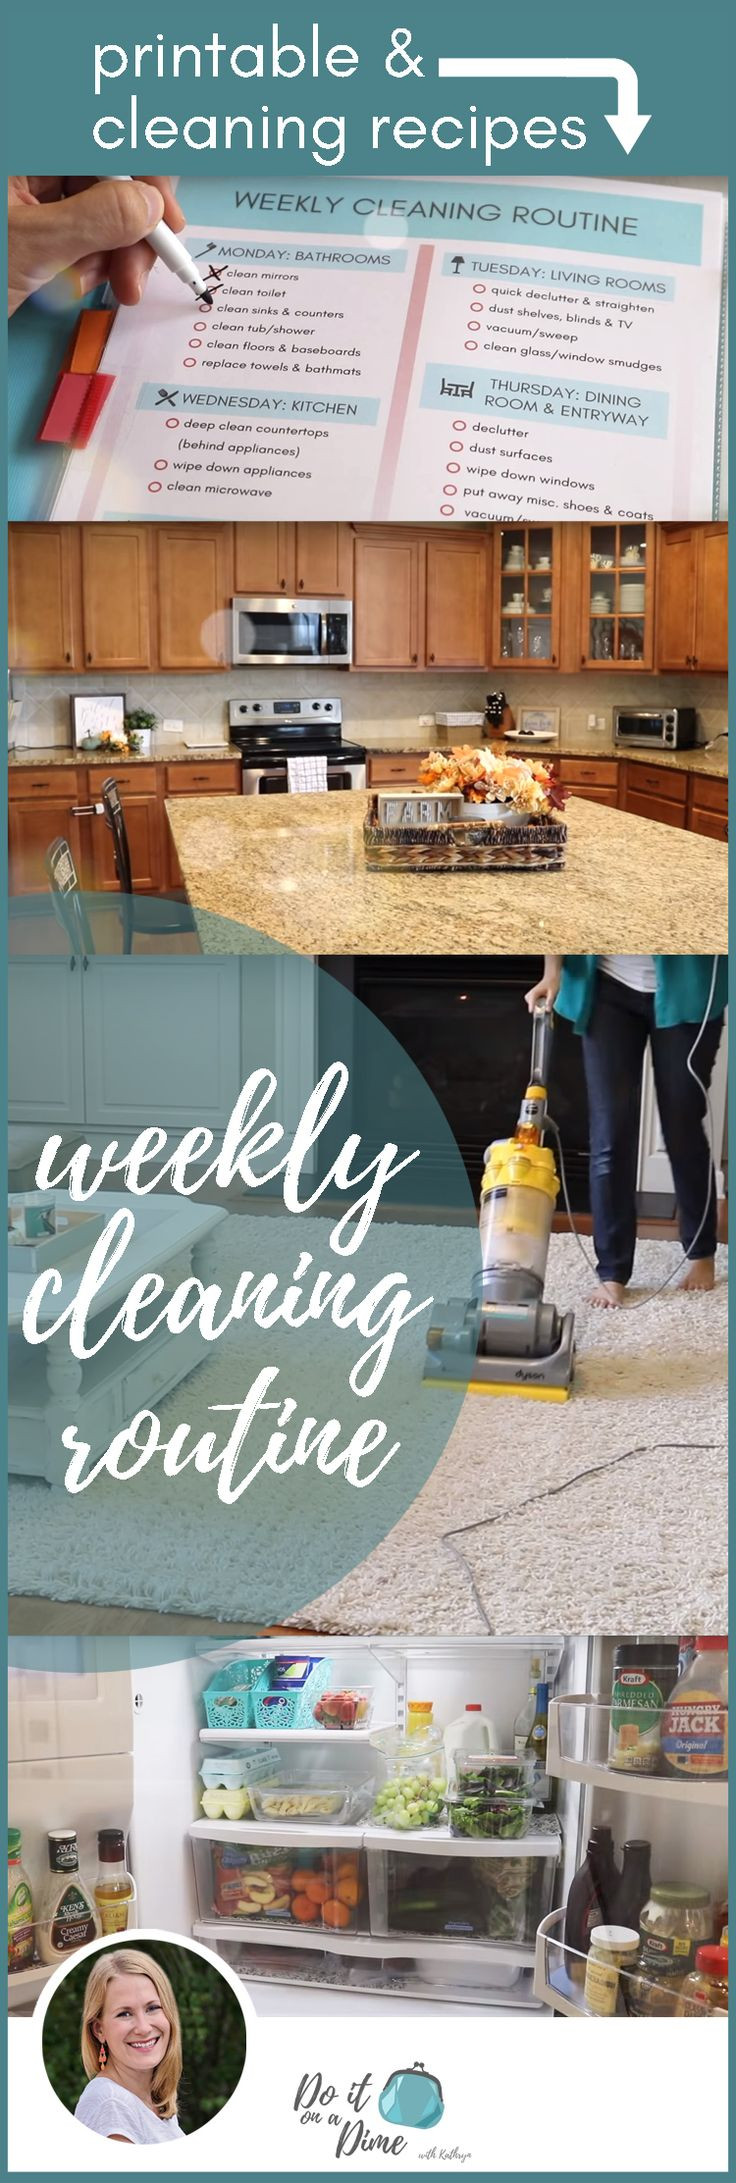 26 best Cleaning Tips images on Pinterest | Cleaning hacks, Cleaning ...